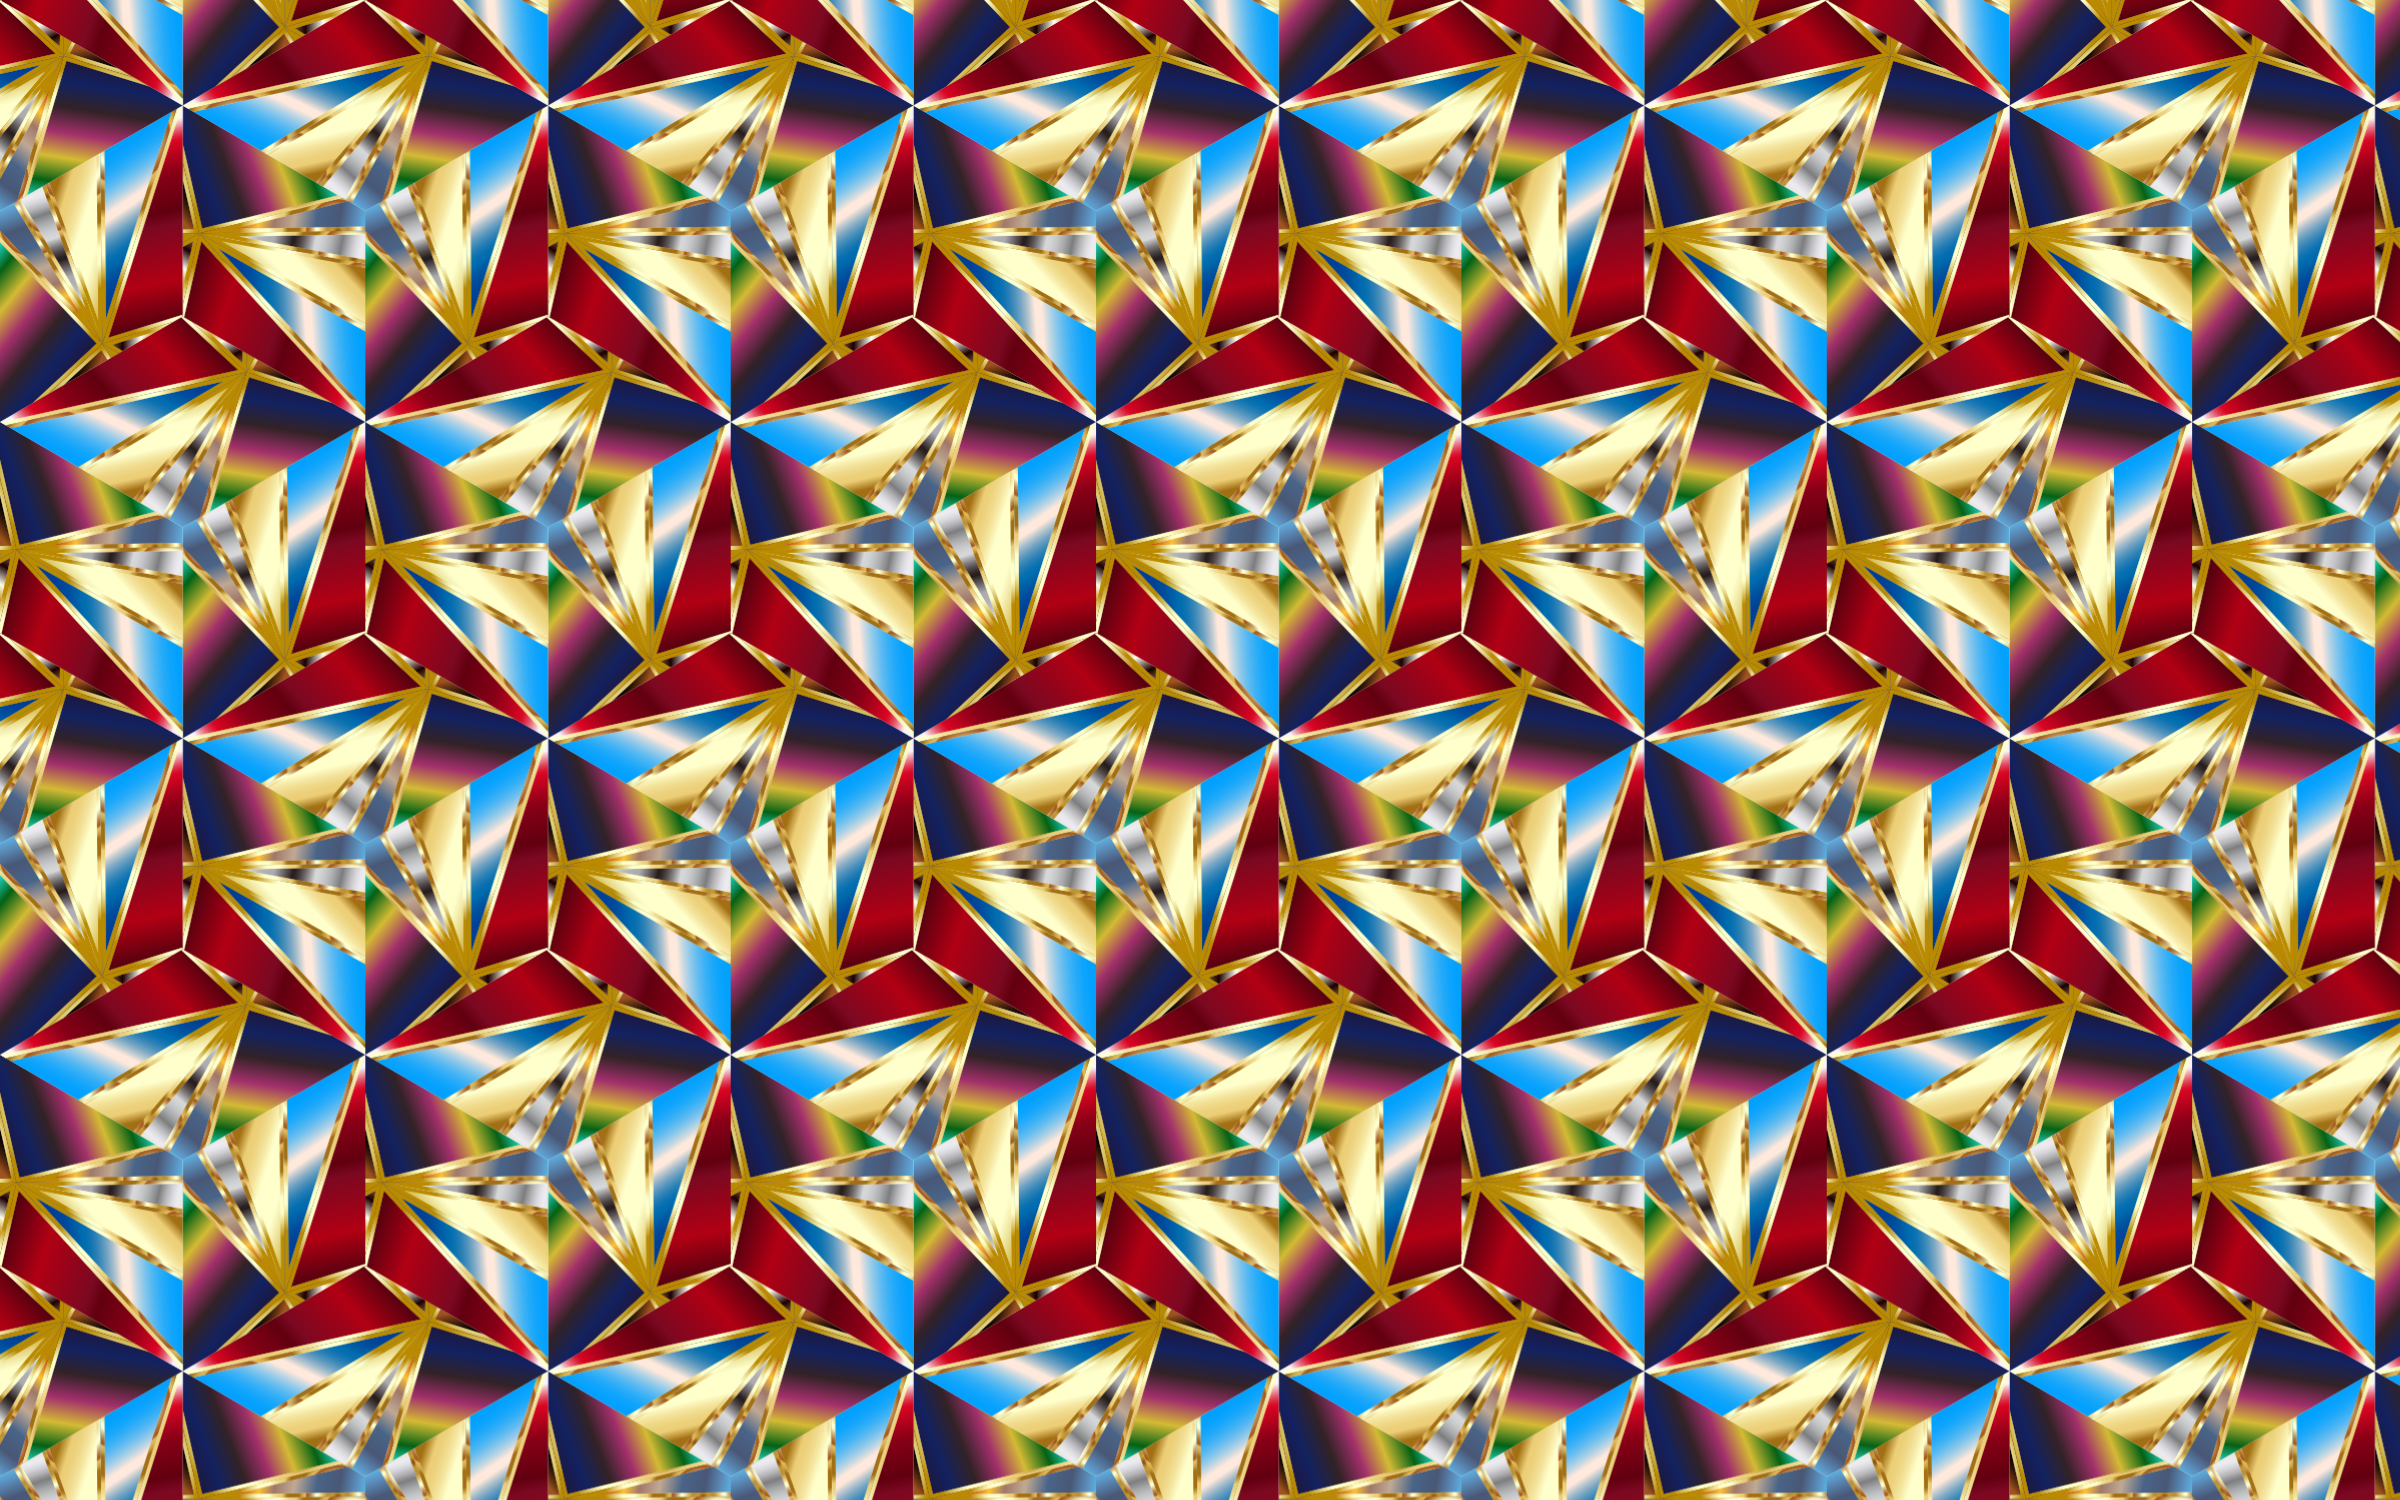 Seamless Pattern 135 by GDJ